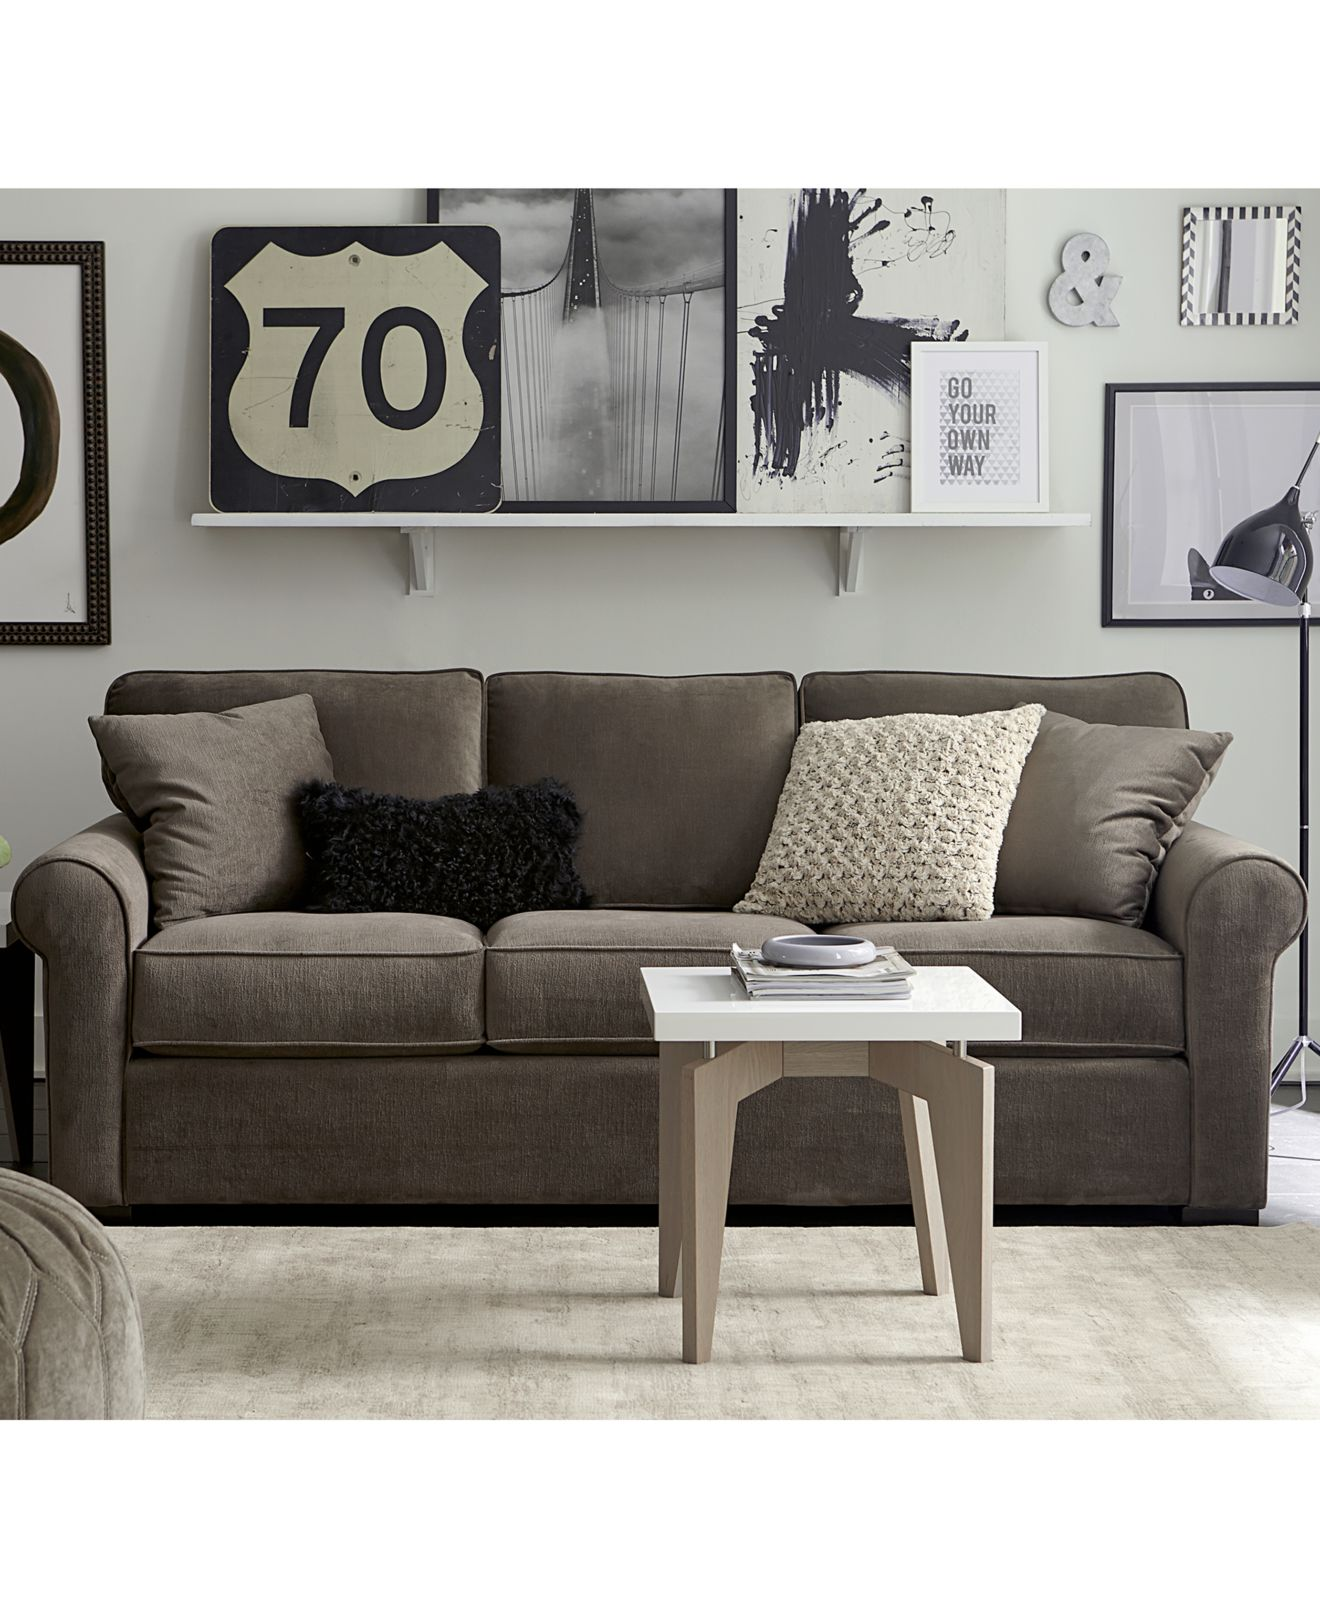 Remo ii fabric sofa living room furniture collection